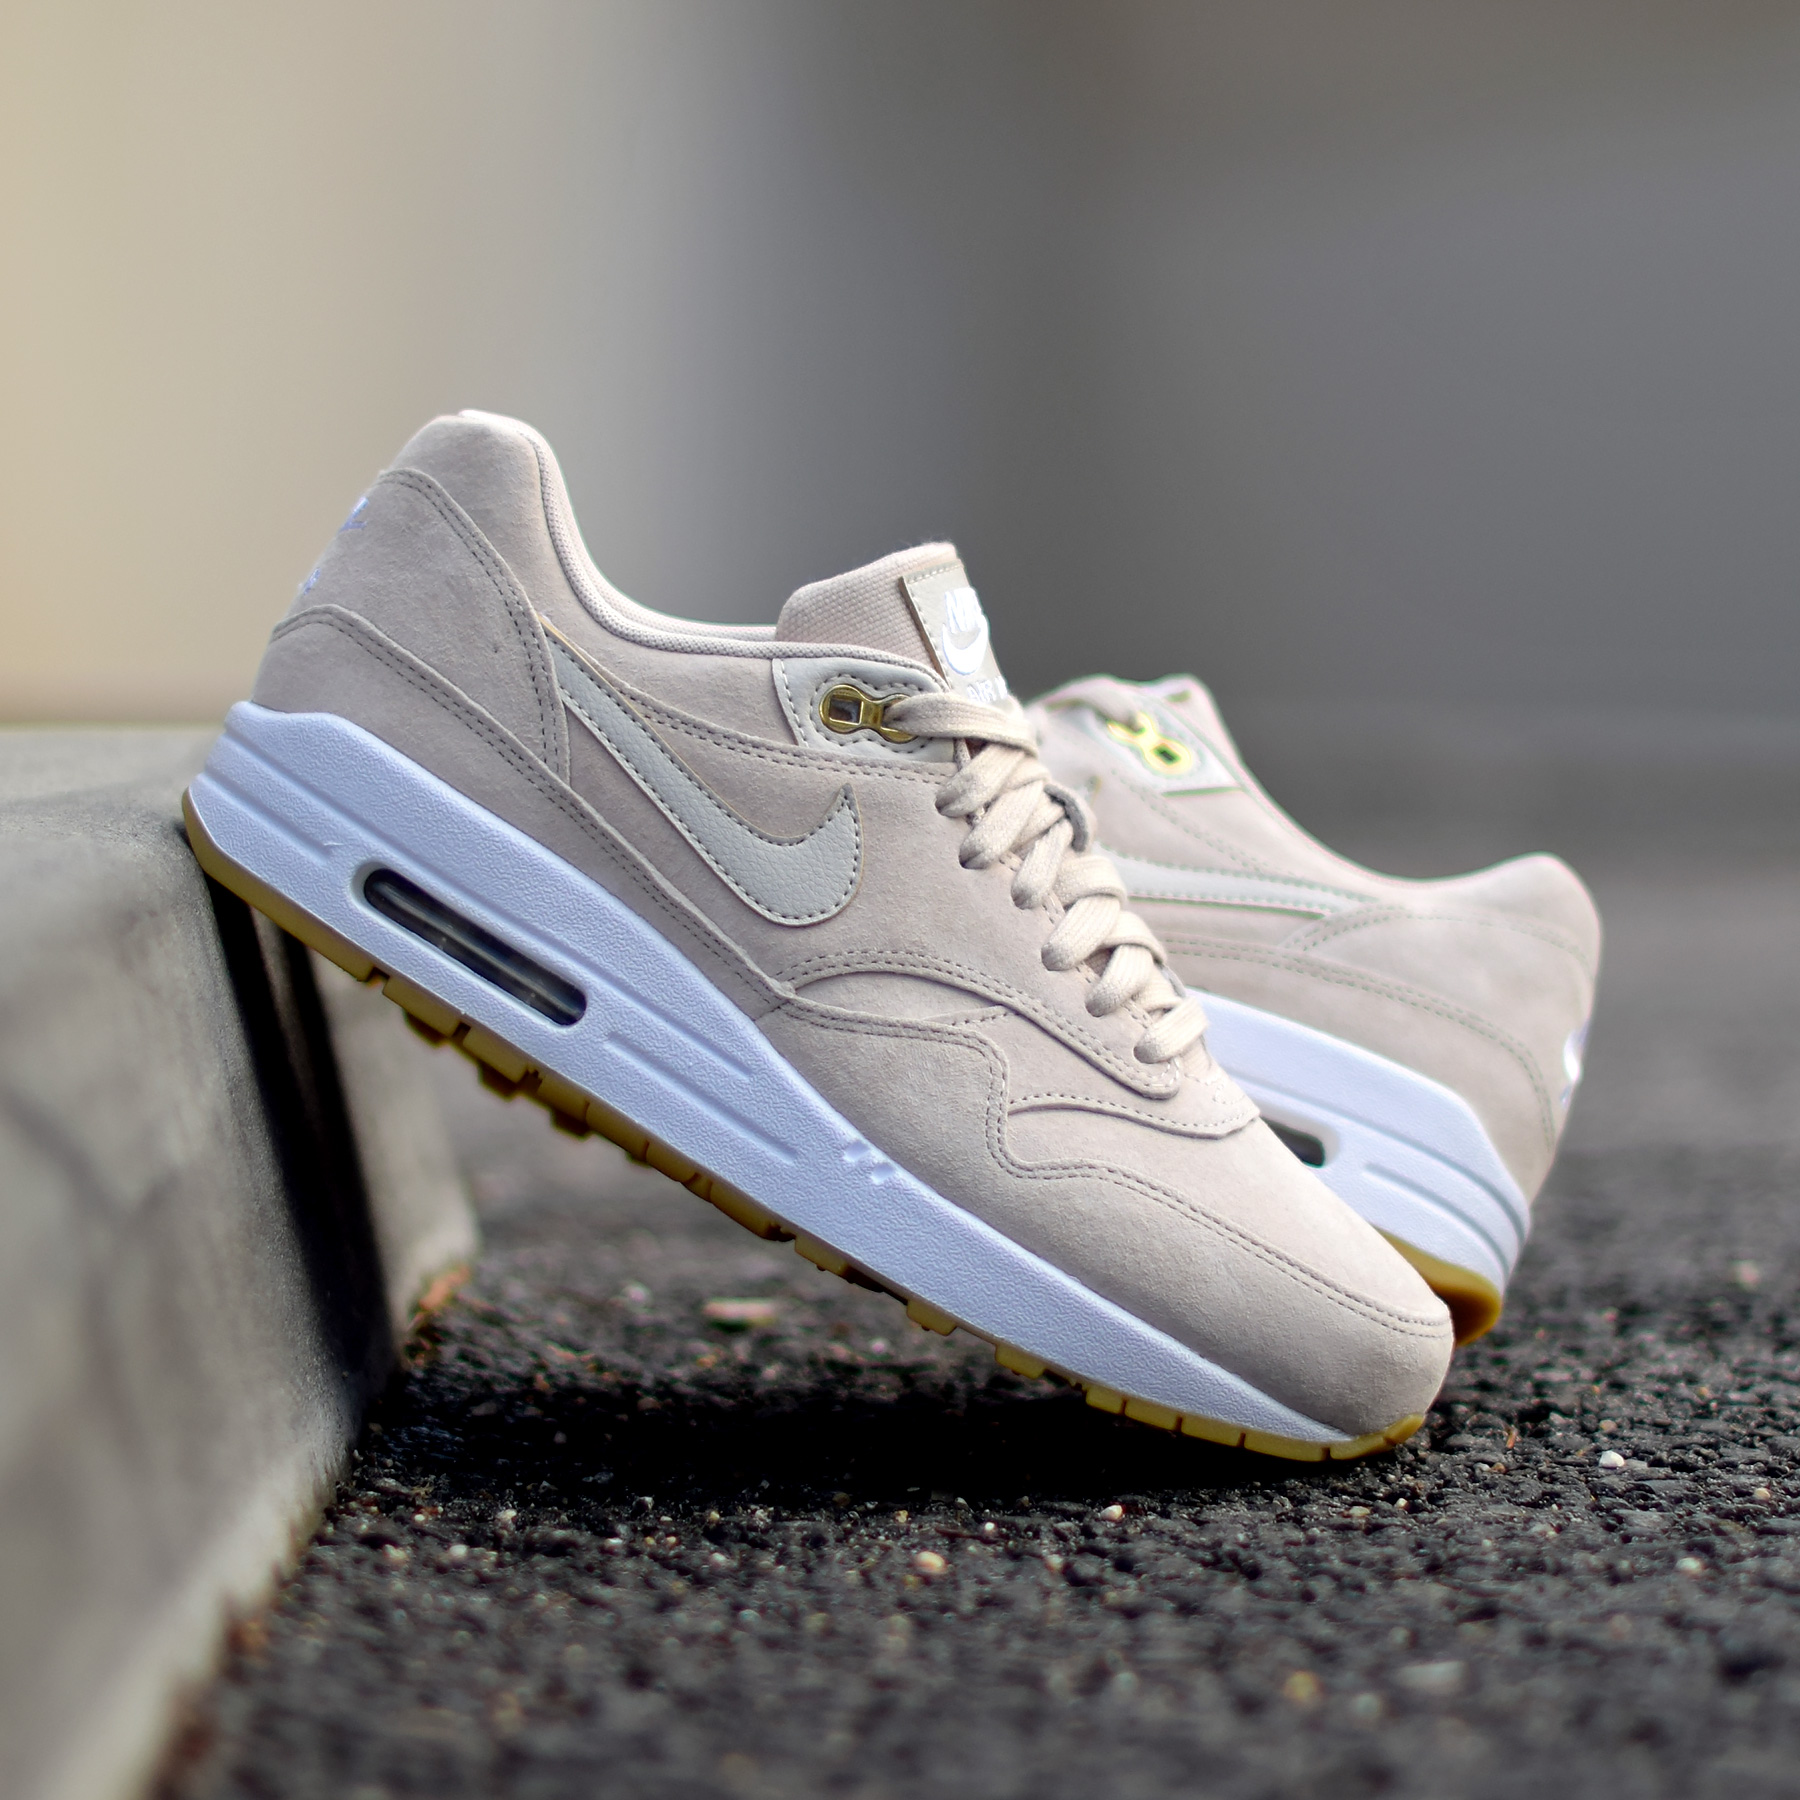 acheter populaire 8e942 5729b Nike Air Max 1 Suede Gum Pack - Sneakers.fr